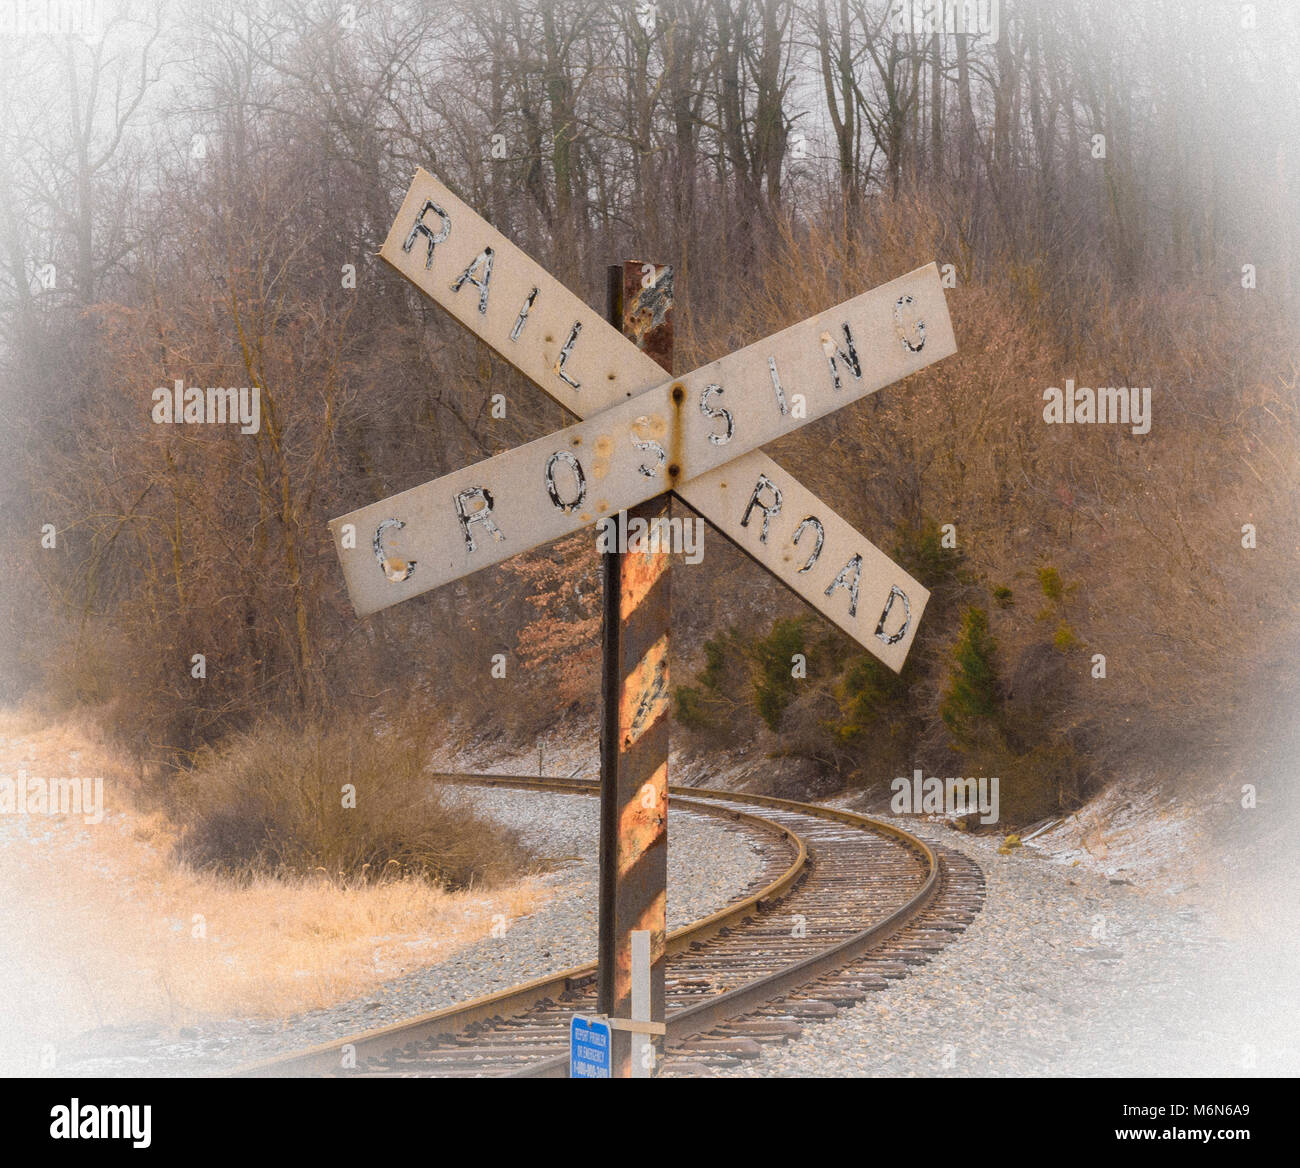 A vintage RR crossing sign located along side for a curve in the railroad tracks in eht winter. Vignetting effect - Stock Image